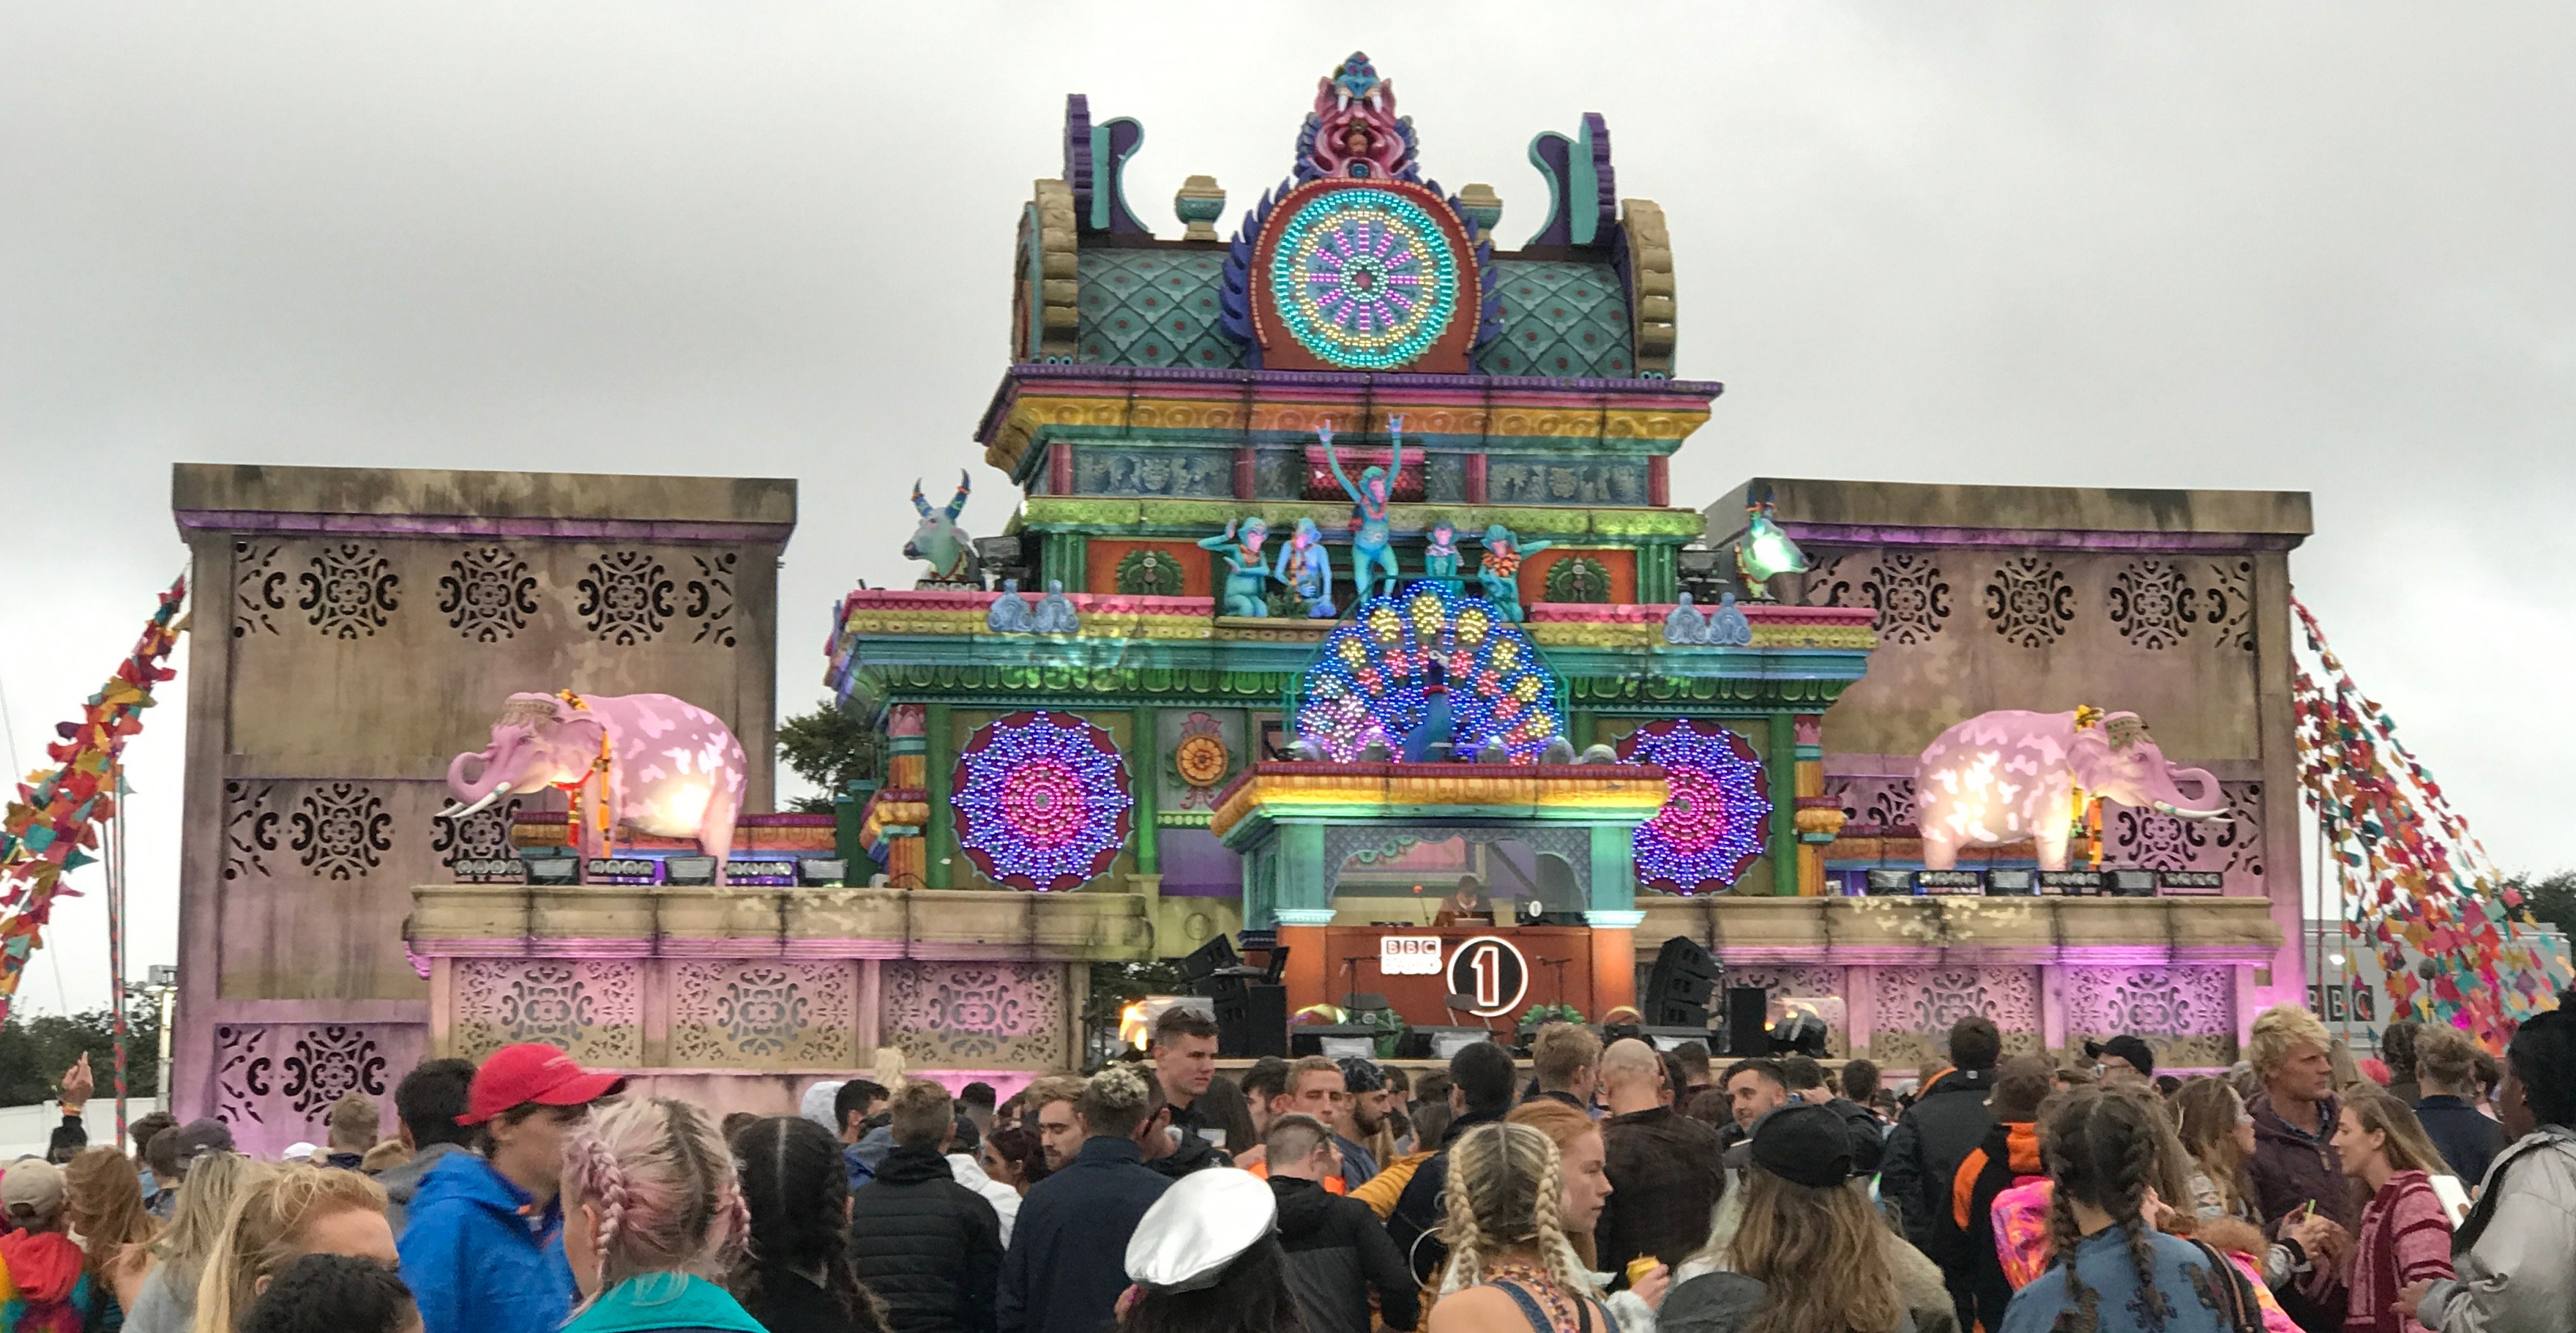 The colourful Bollywood theme Temple Stage at Bestival with Annie Mac live broadcasting on Radio 1 uk music festival